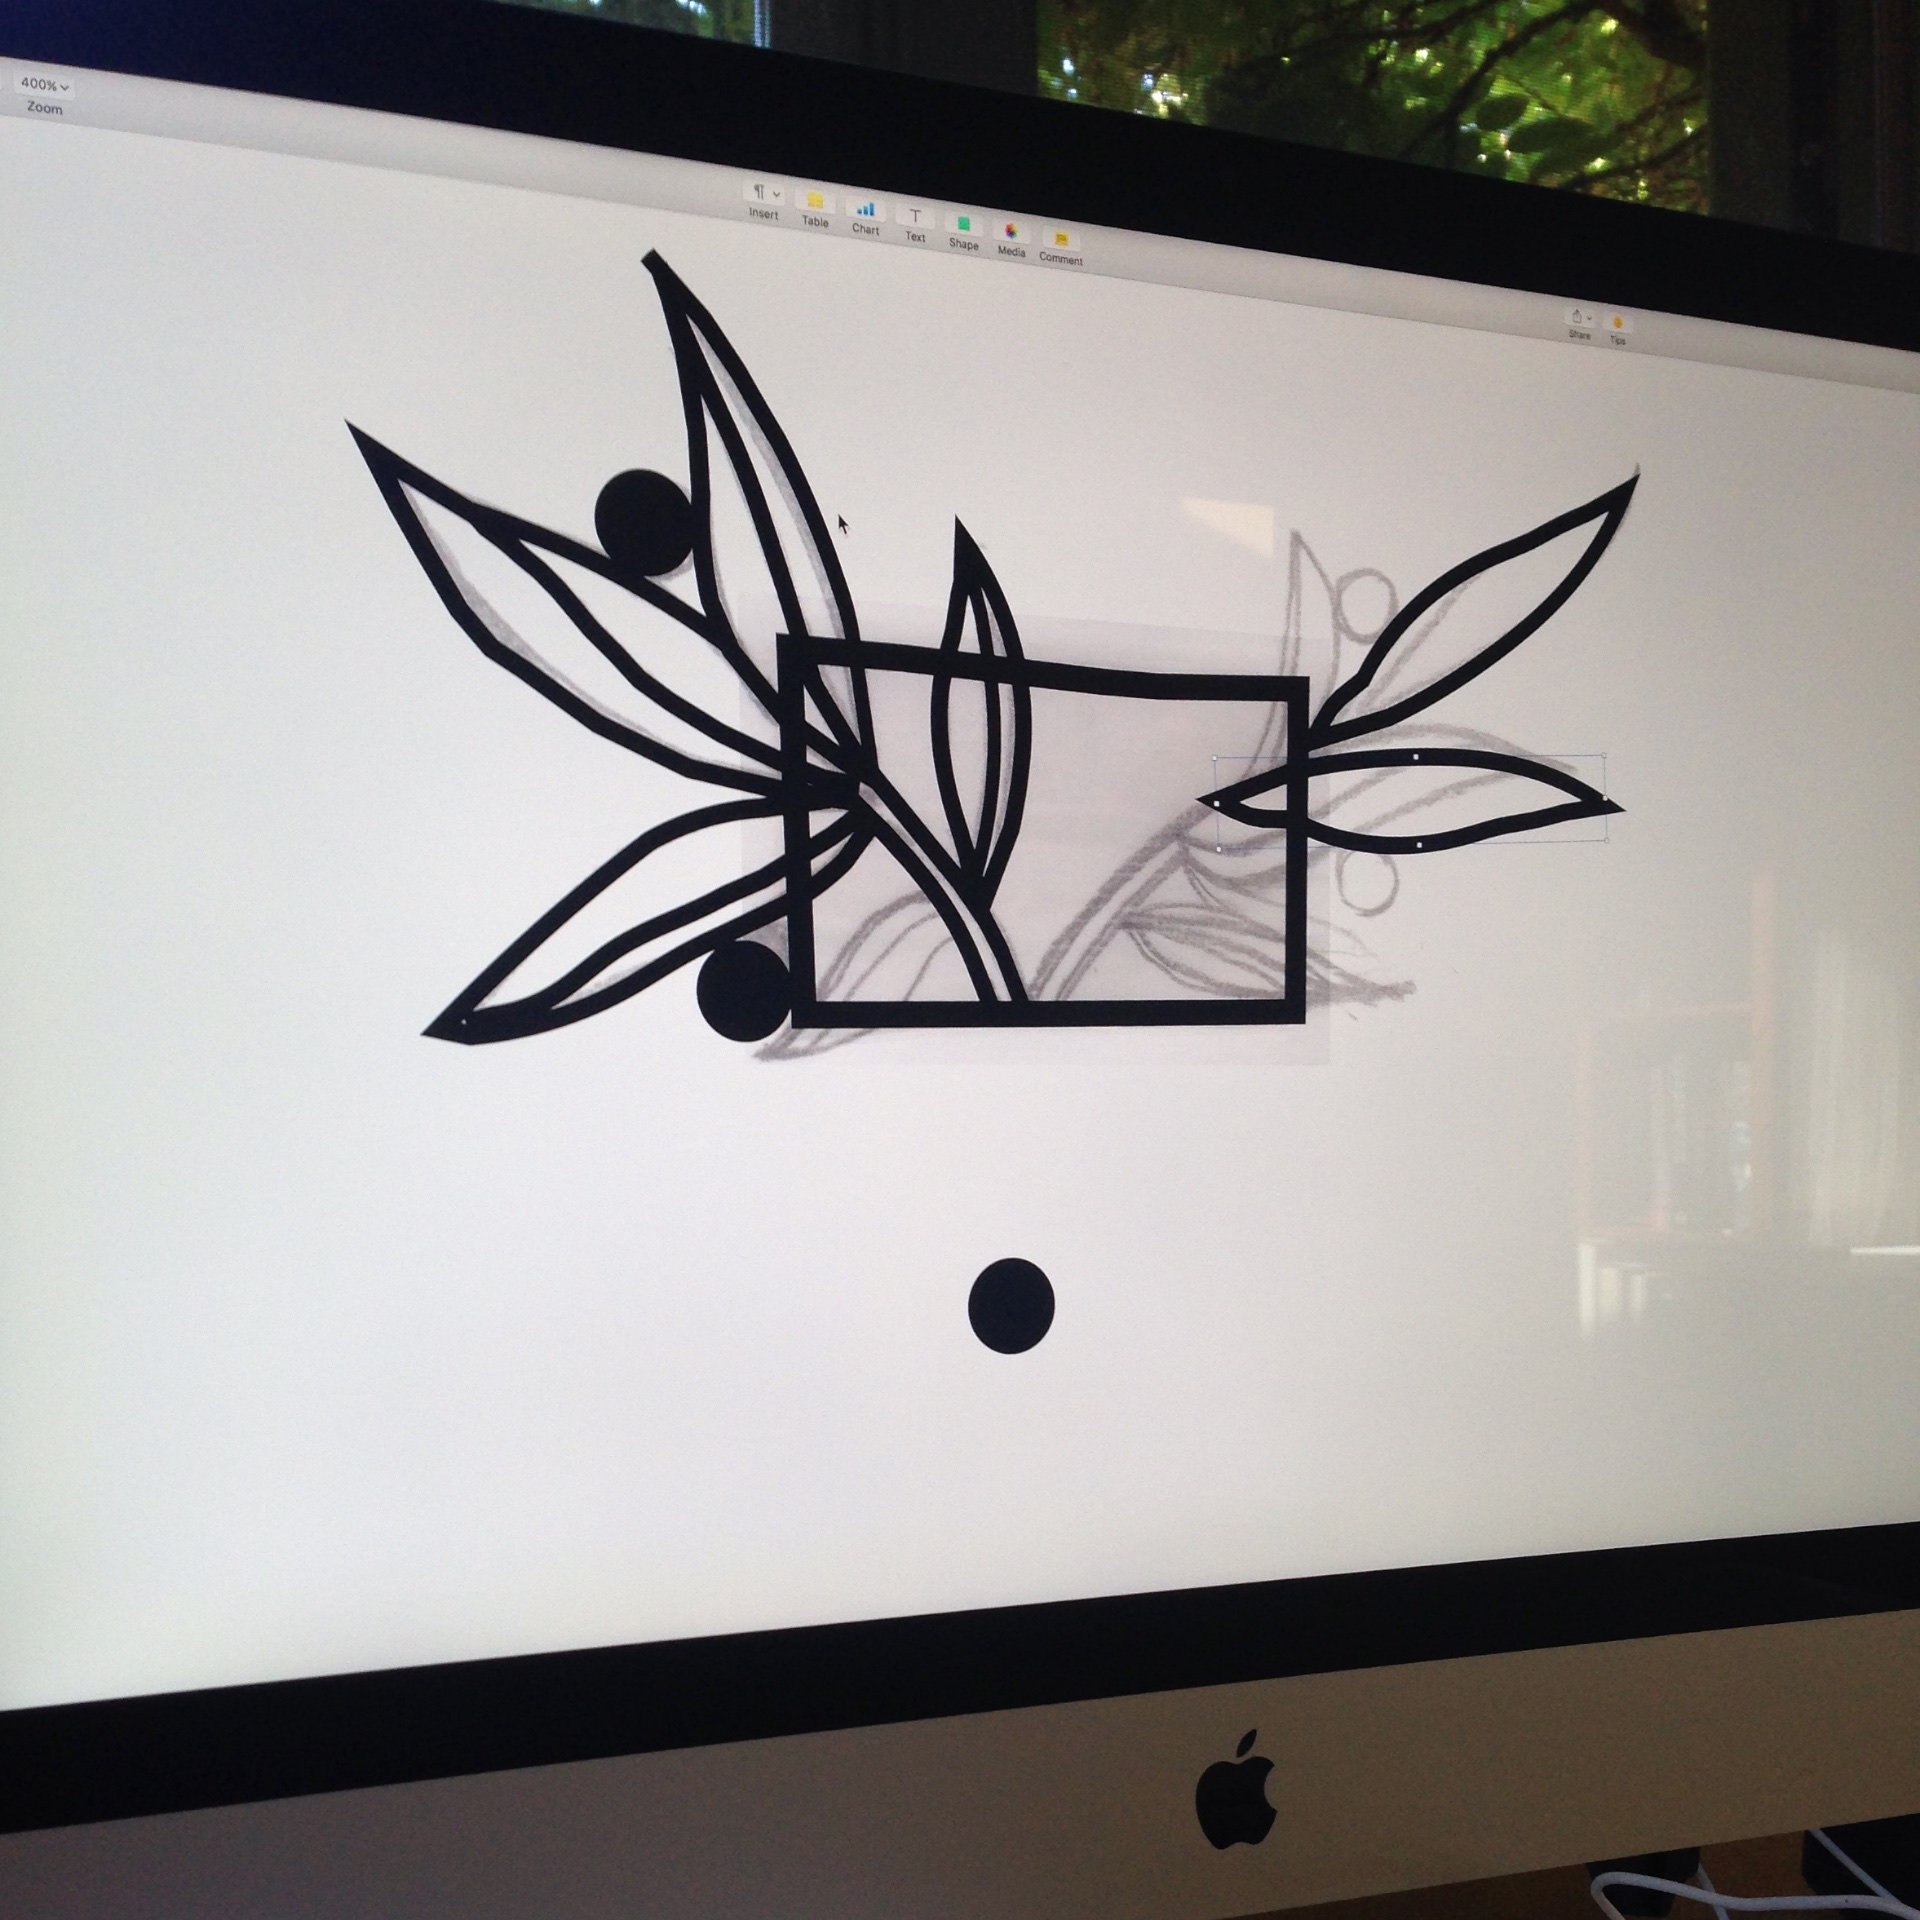 Adobe Illustrator was useful in created the template for cutting the metal.